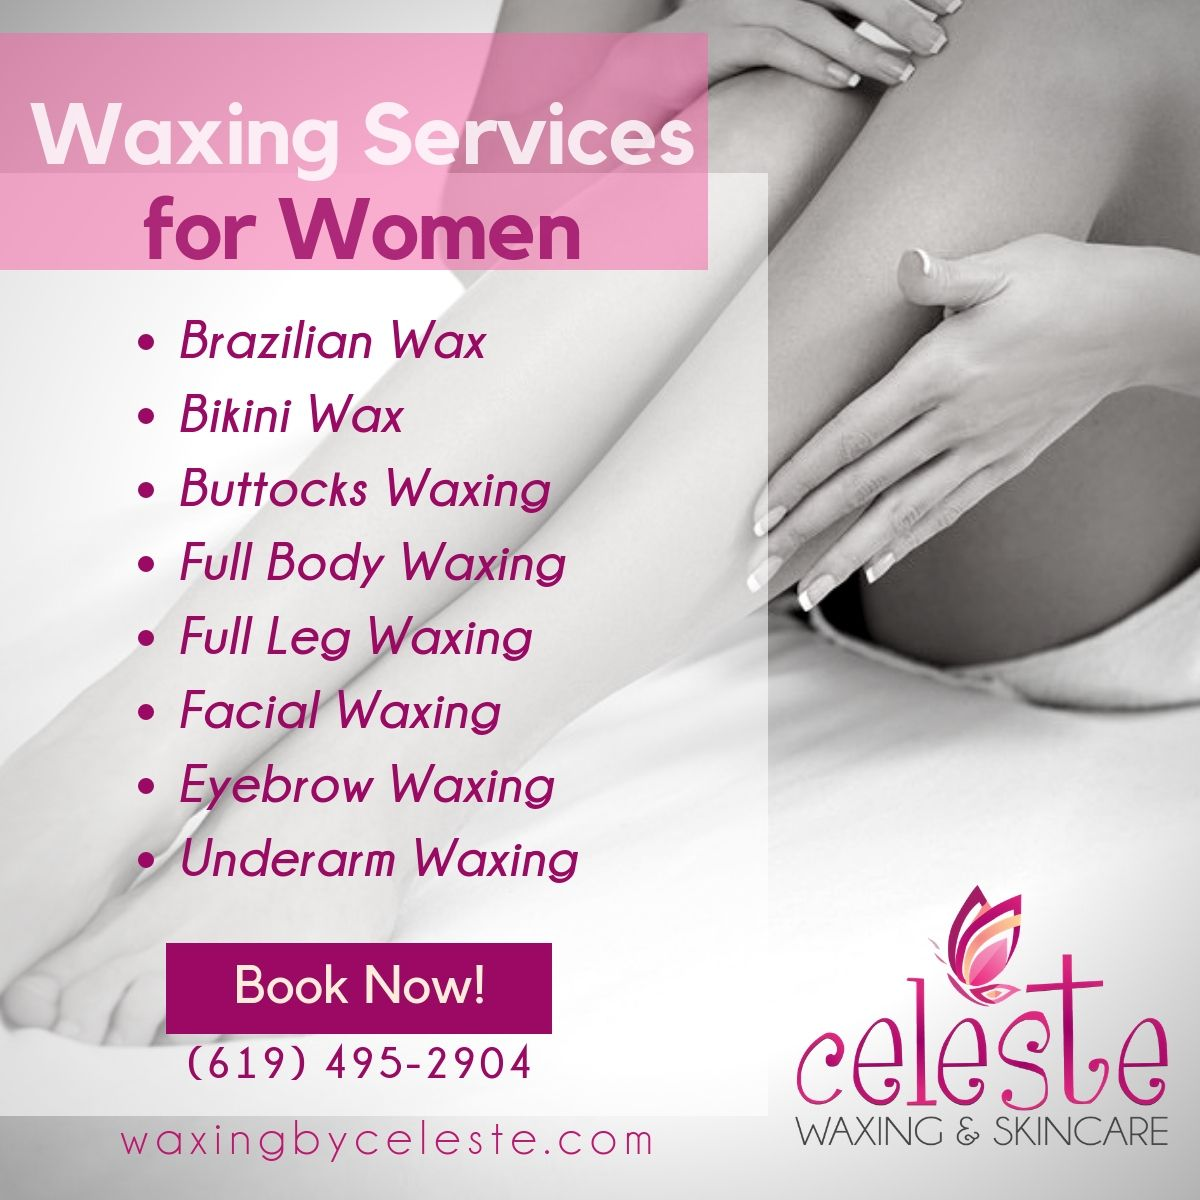 Our Spa Specializes In Waxing And We Provide A Long List Of Services From Eyebrow To Feet Waxing We Are Best Known For O Brazilian Waxing Body Waxing Waxing